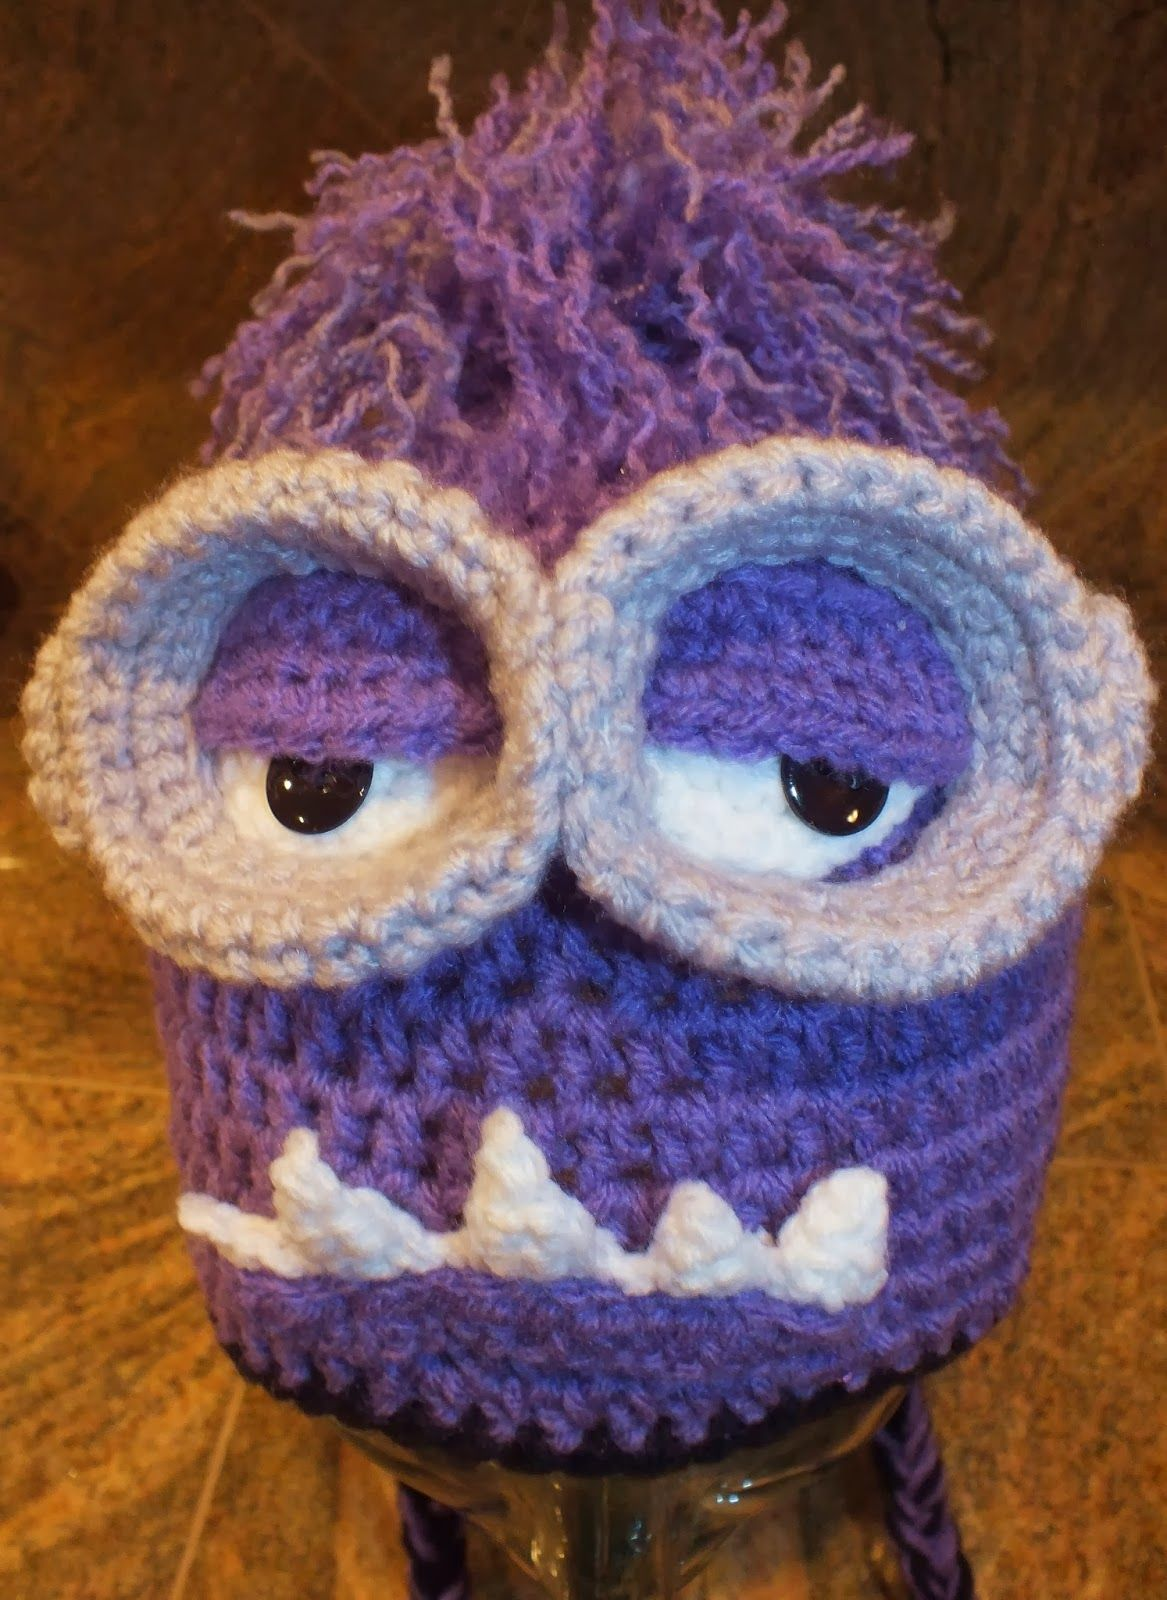 Crochet purple monster minion hats purple monster minion hats crochet free patterns crafting free recipes decorating party tips cakes cooking poetry poems travel tips crochet animals hats purses bags dolls bankloansurffo Image collections